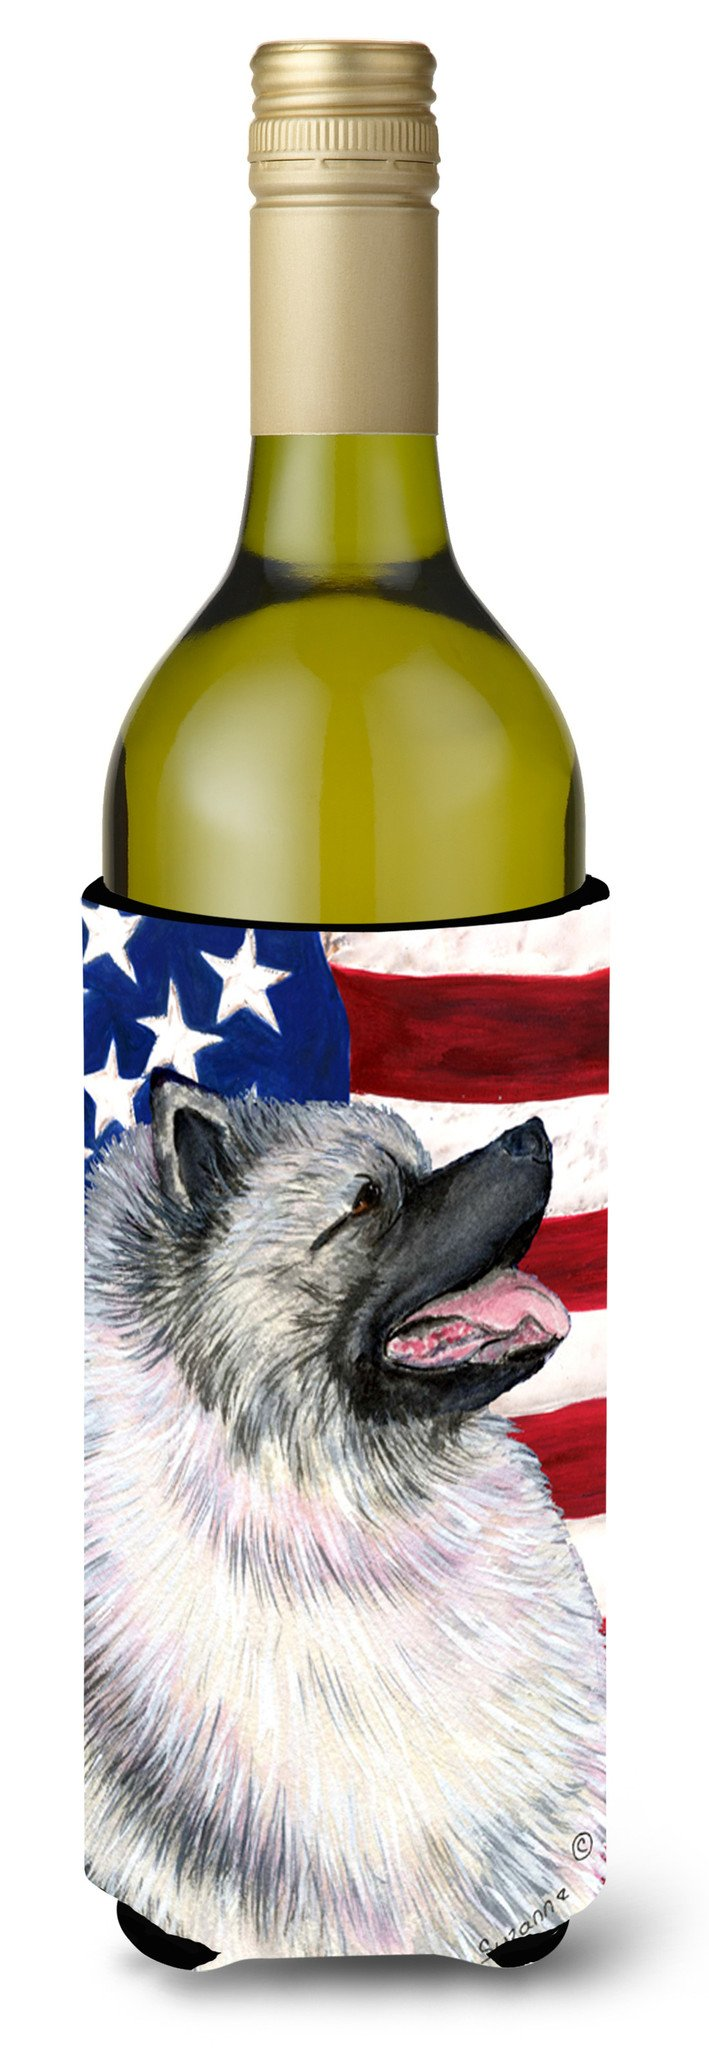 USA American Flag with Keeshond Wine Bottle Beverage Insulator Beverage Insulator Hugger by Caroline's Treasures